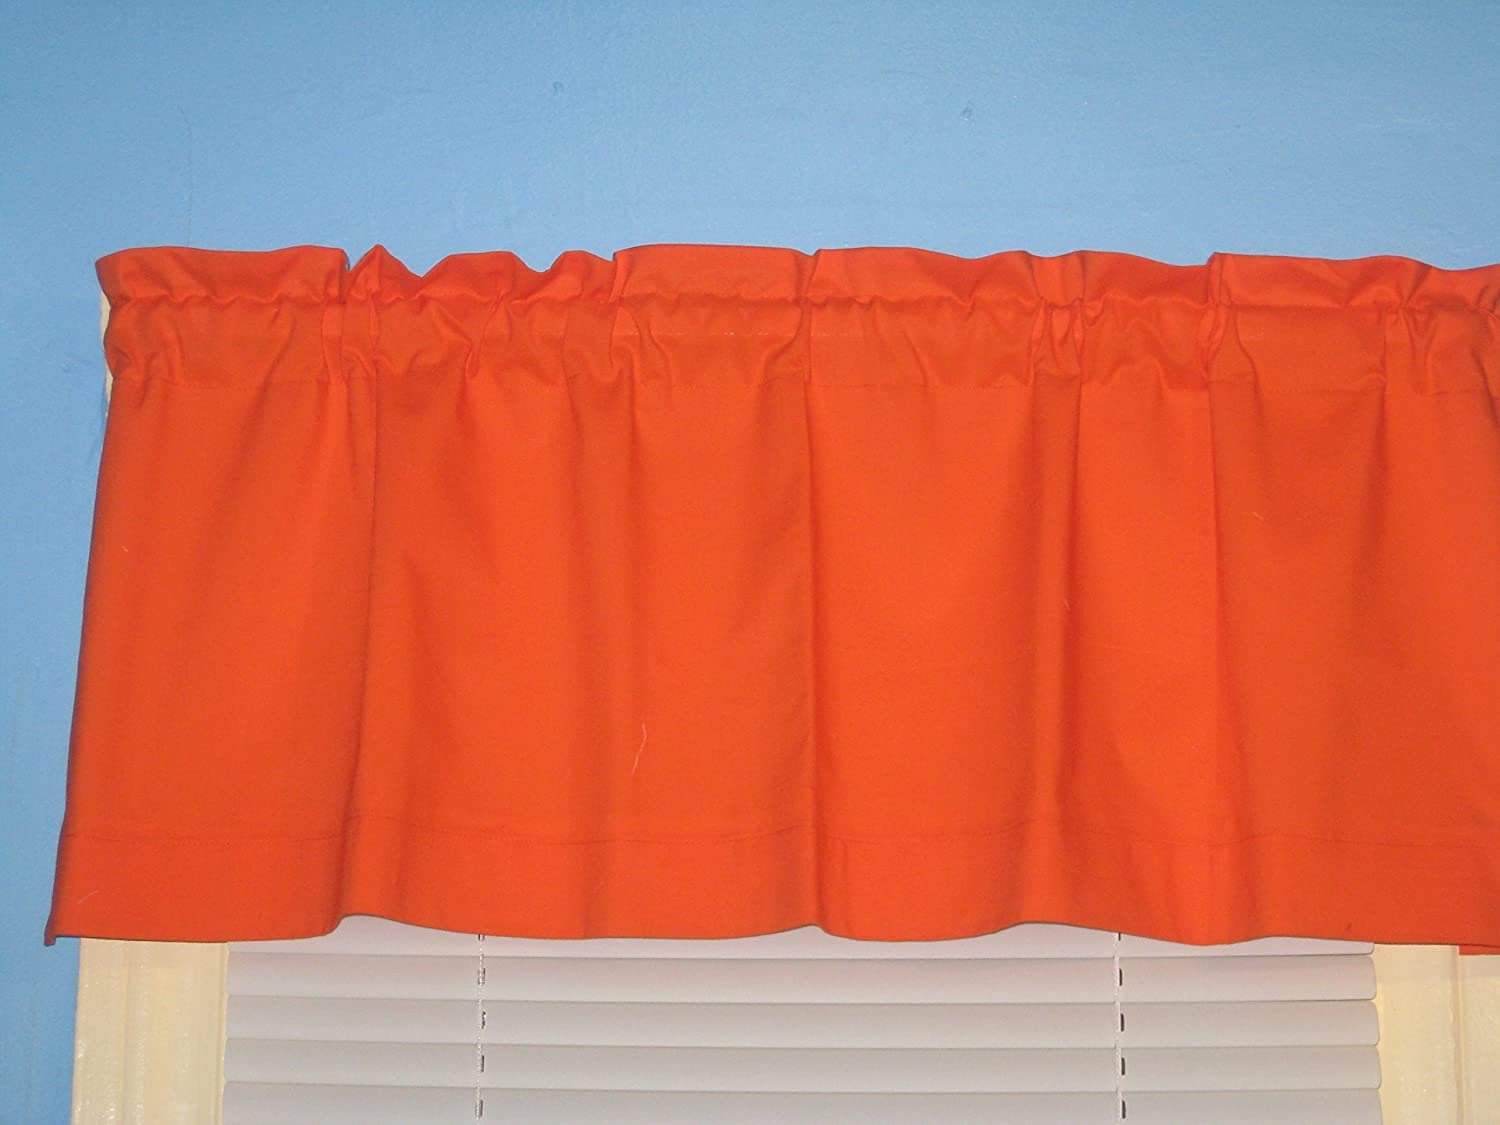 ideas orange curtain enchanting rod for window pretty valances valance windows kitchen waverly tan fabric curtains drapes using target covering bedroom